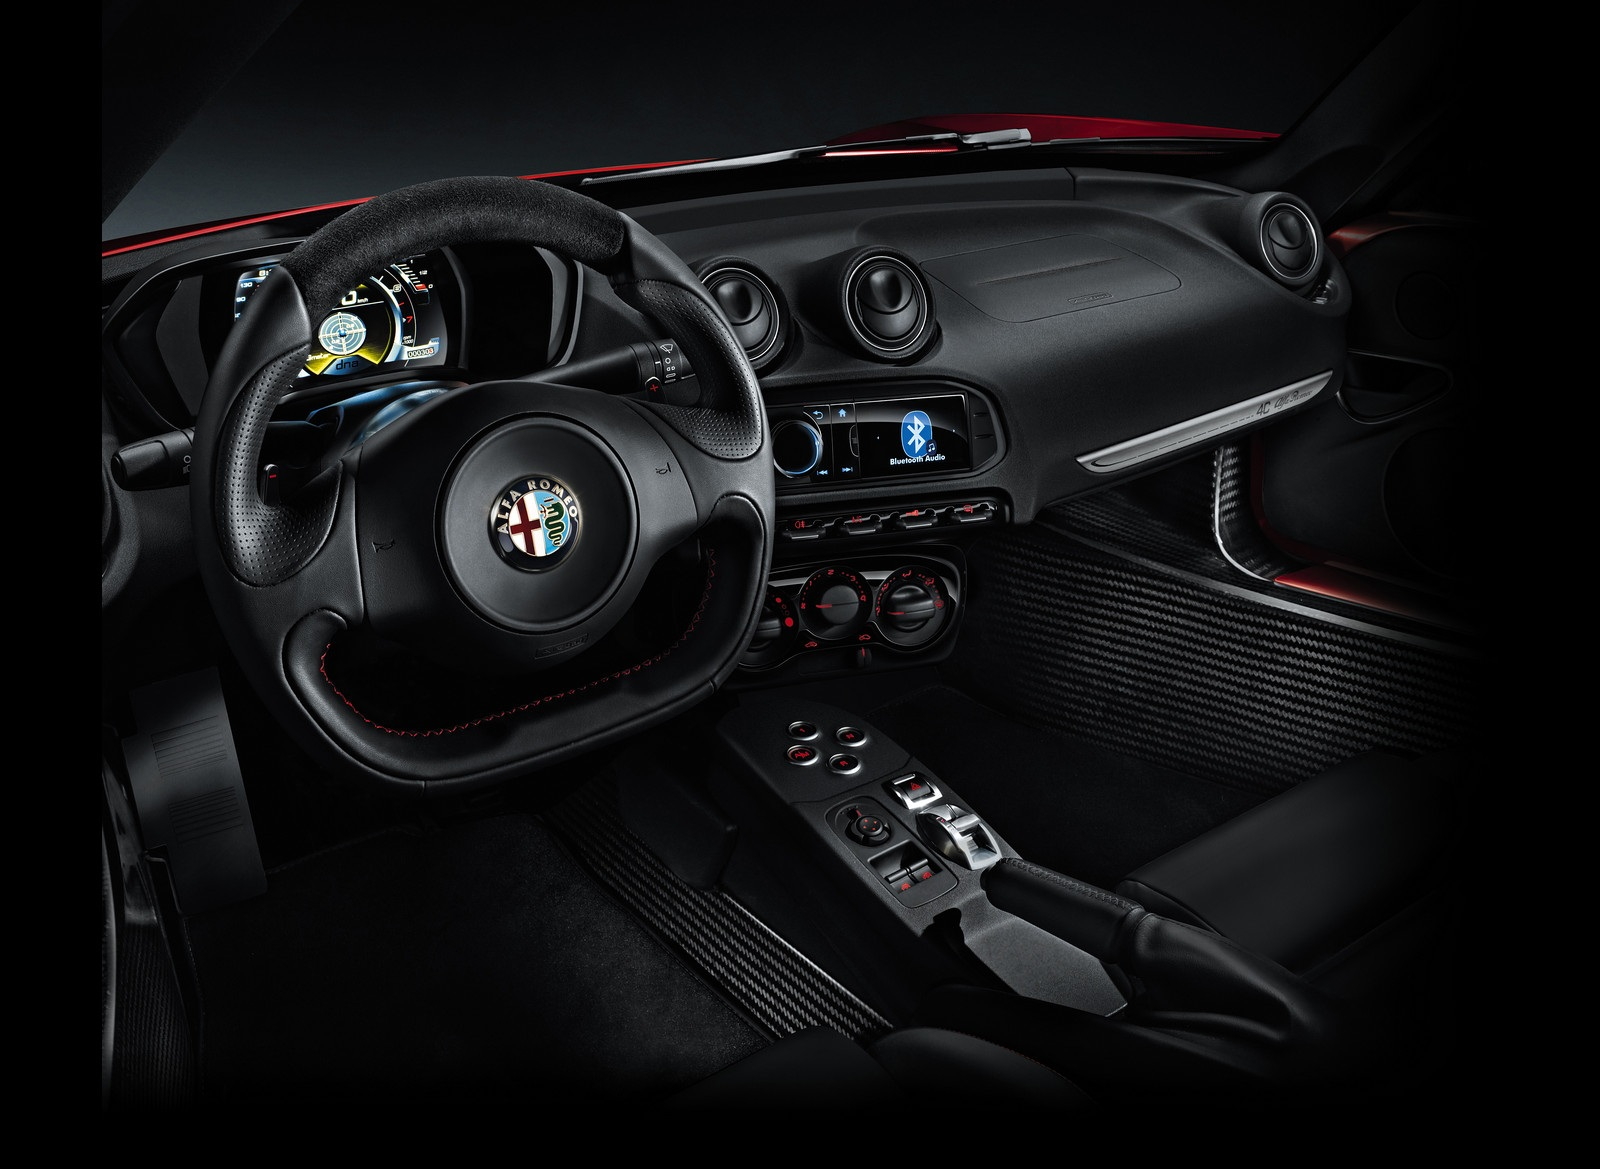 2014 Alfa Romeo 4c Interior And Dashboard (Photo 3 of 25)